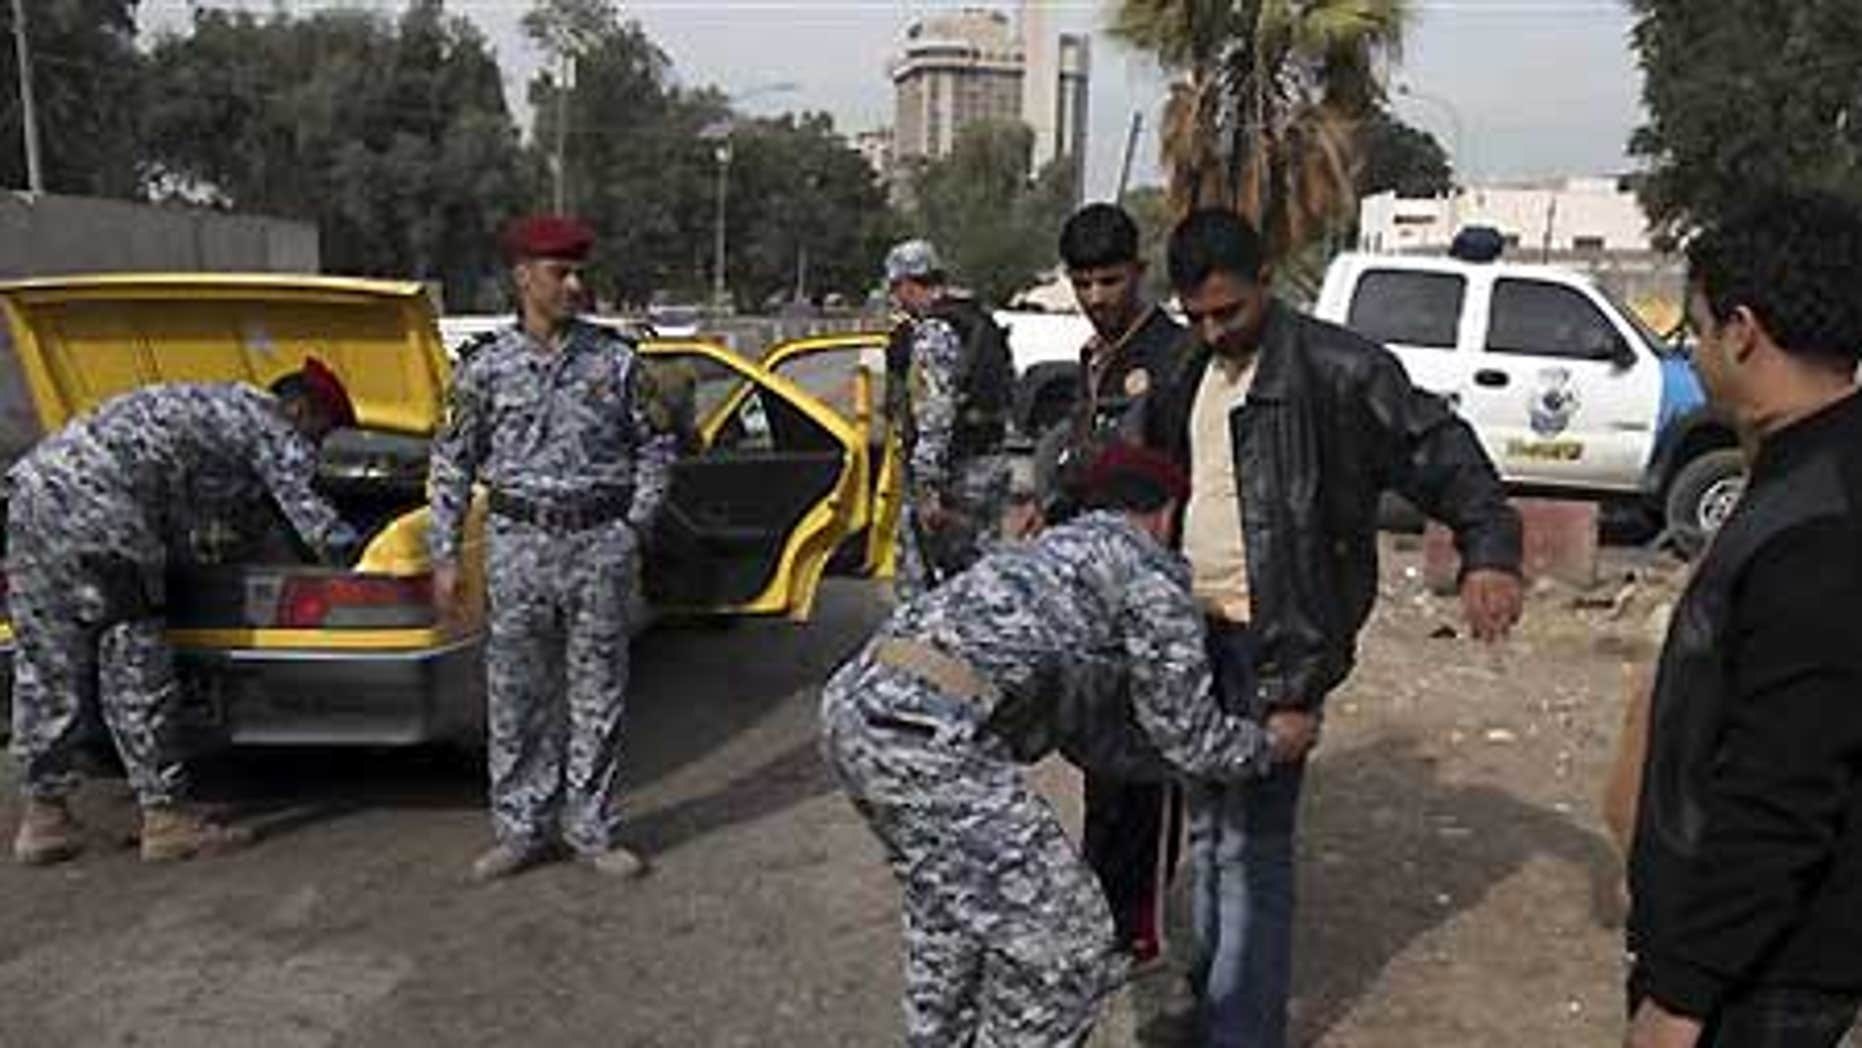 Dec. 14: Iraqi policemen search a man and his car at checkpoint in central Baghdad, Iraq.